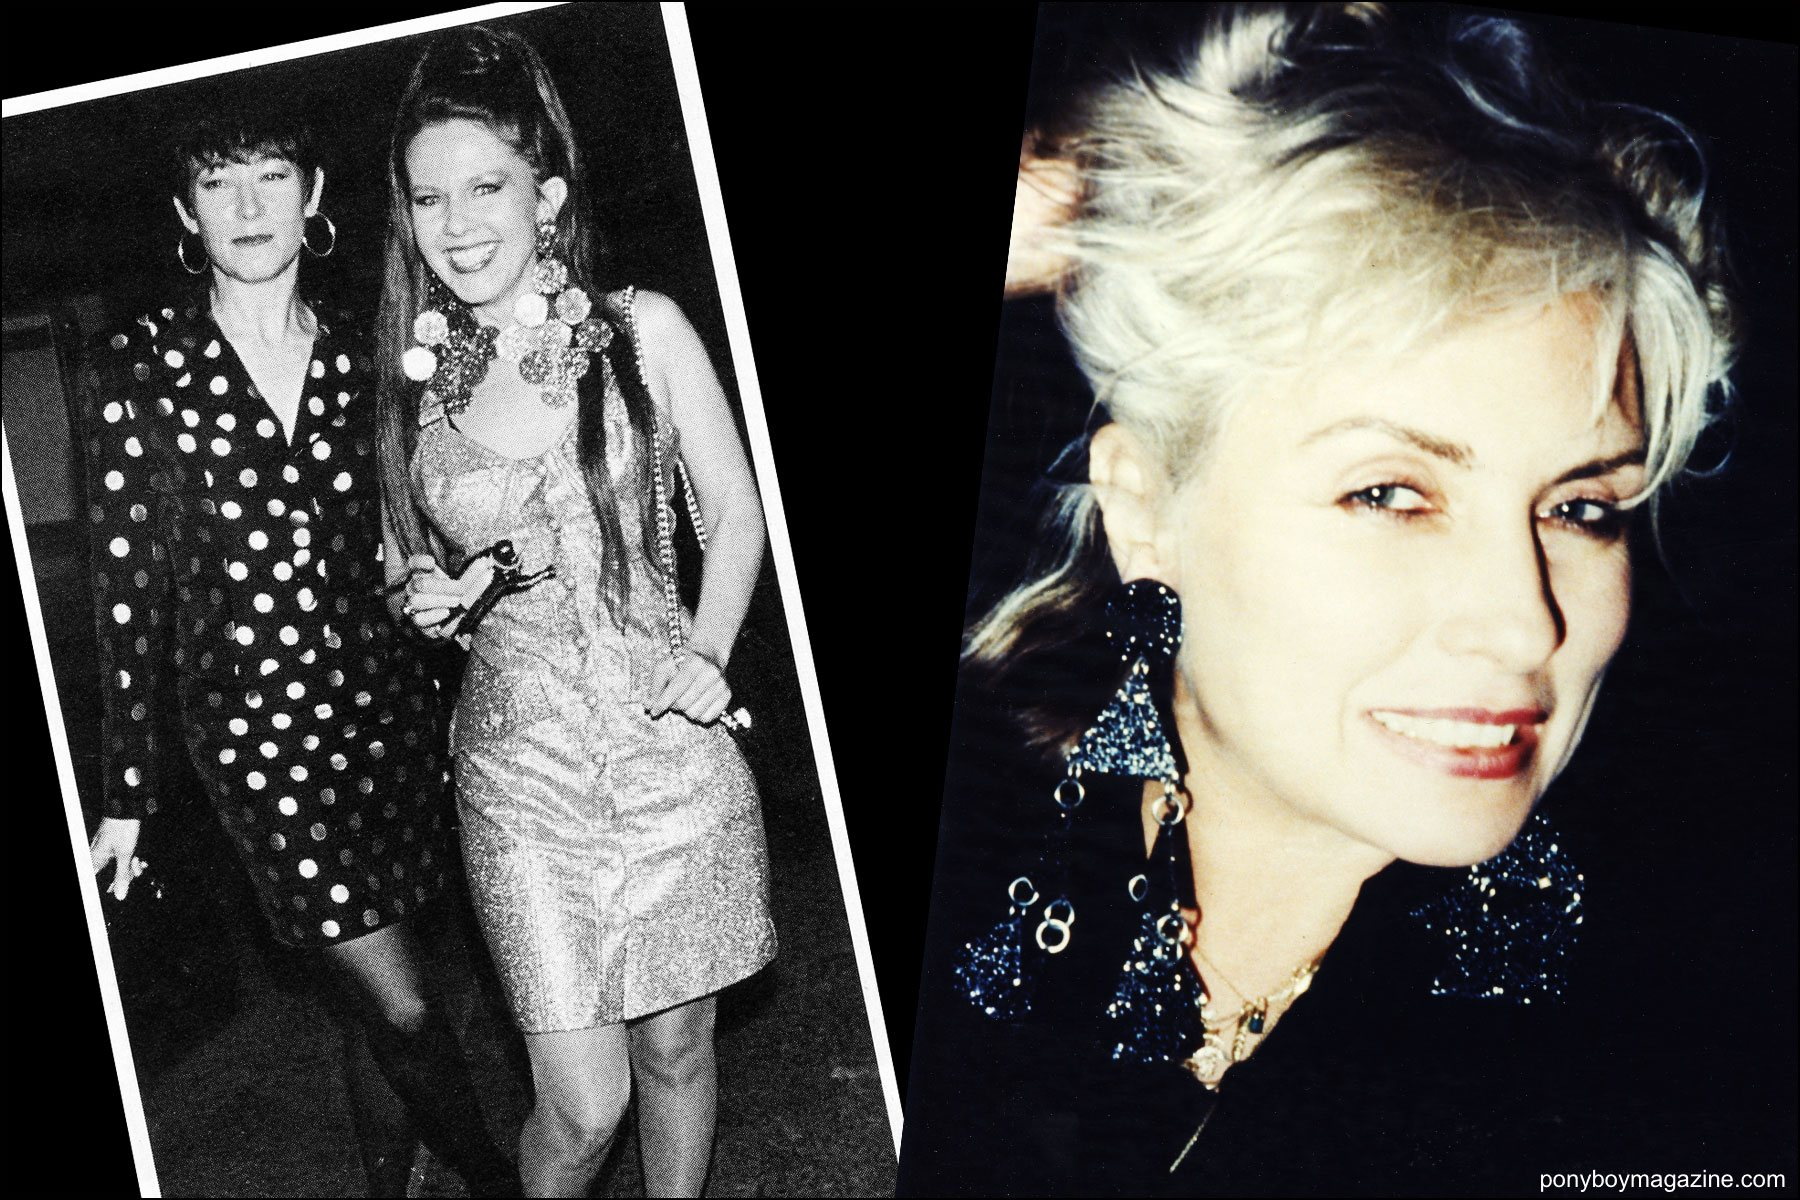 Photos of Kate Pierson from the B-52's and Debbie Harry from Blondie in Maria Ayala earrings. Ponyboy magazine NY.